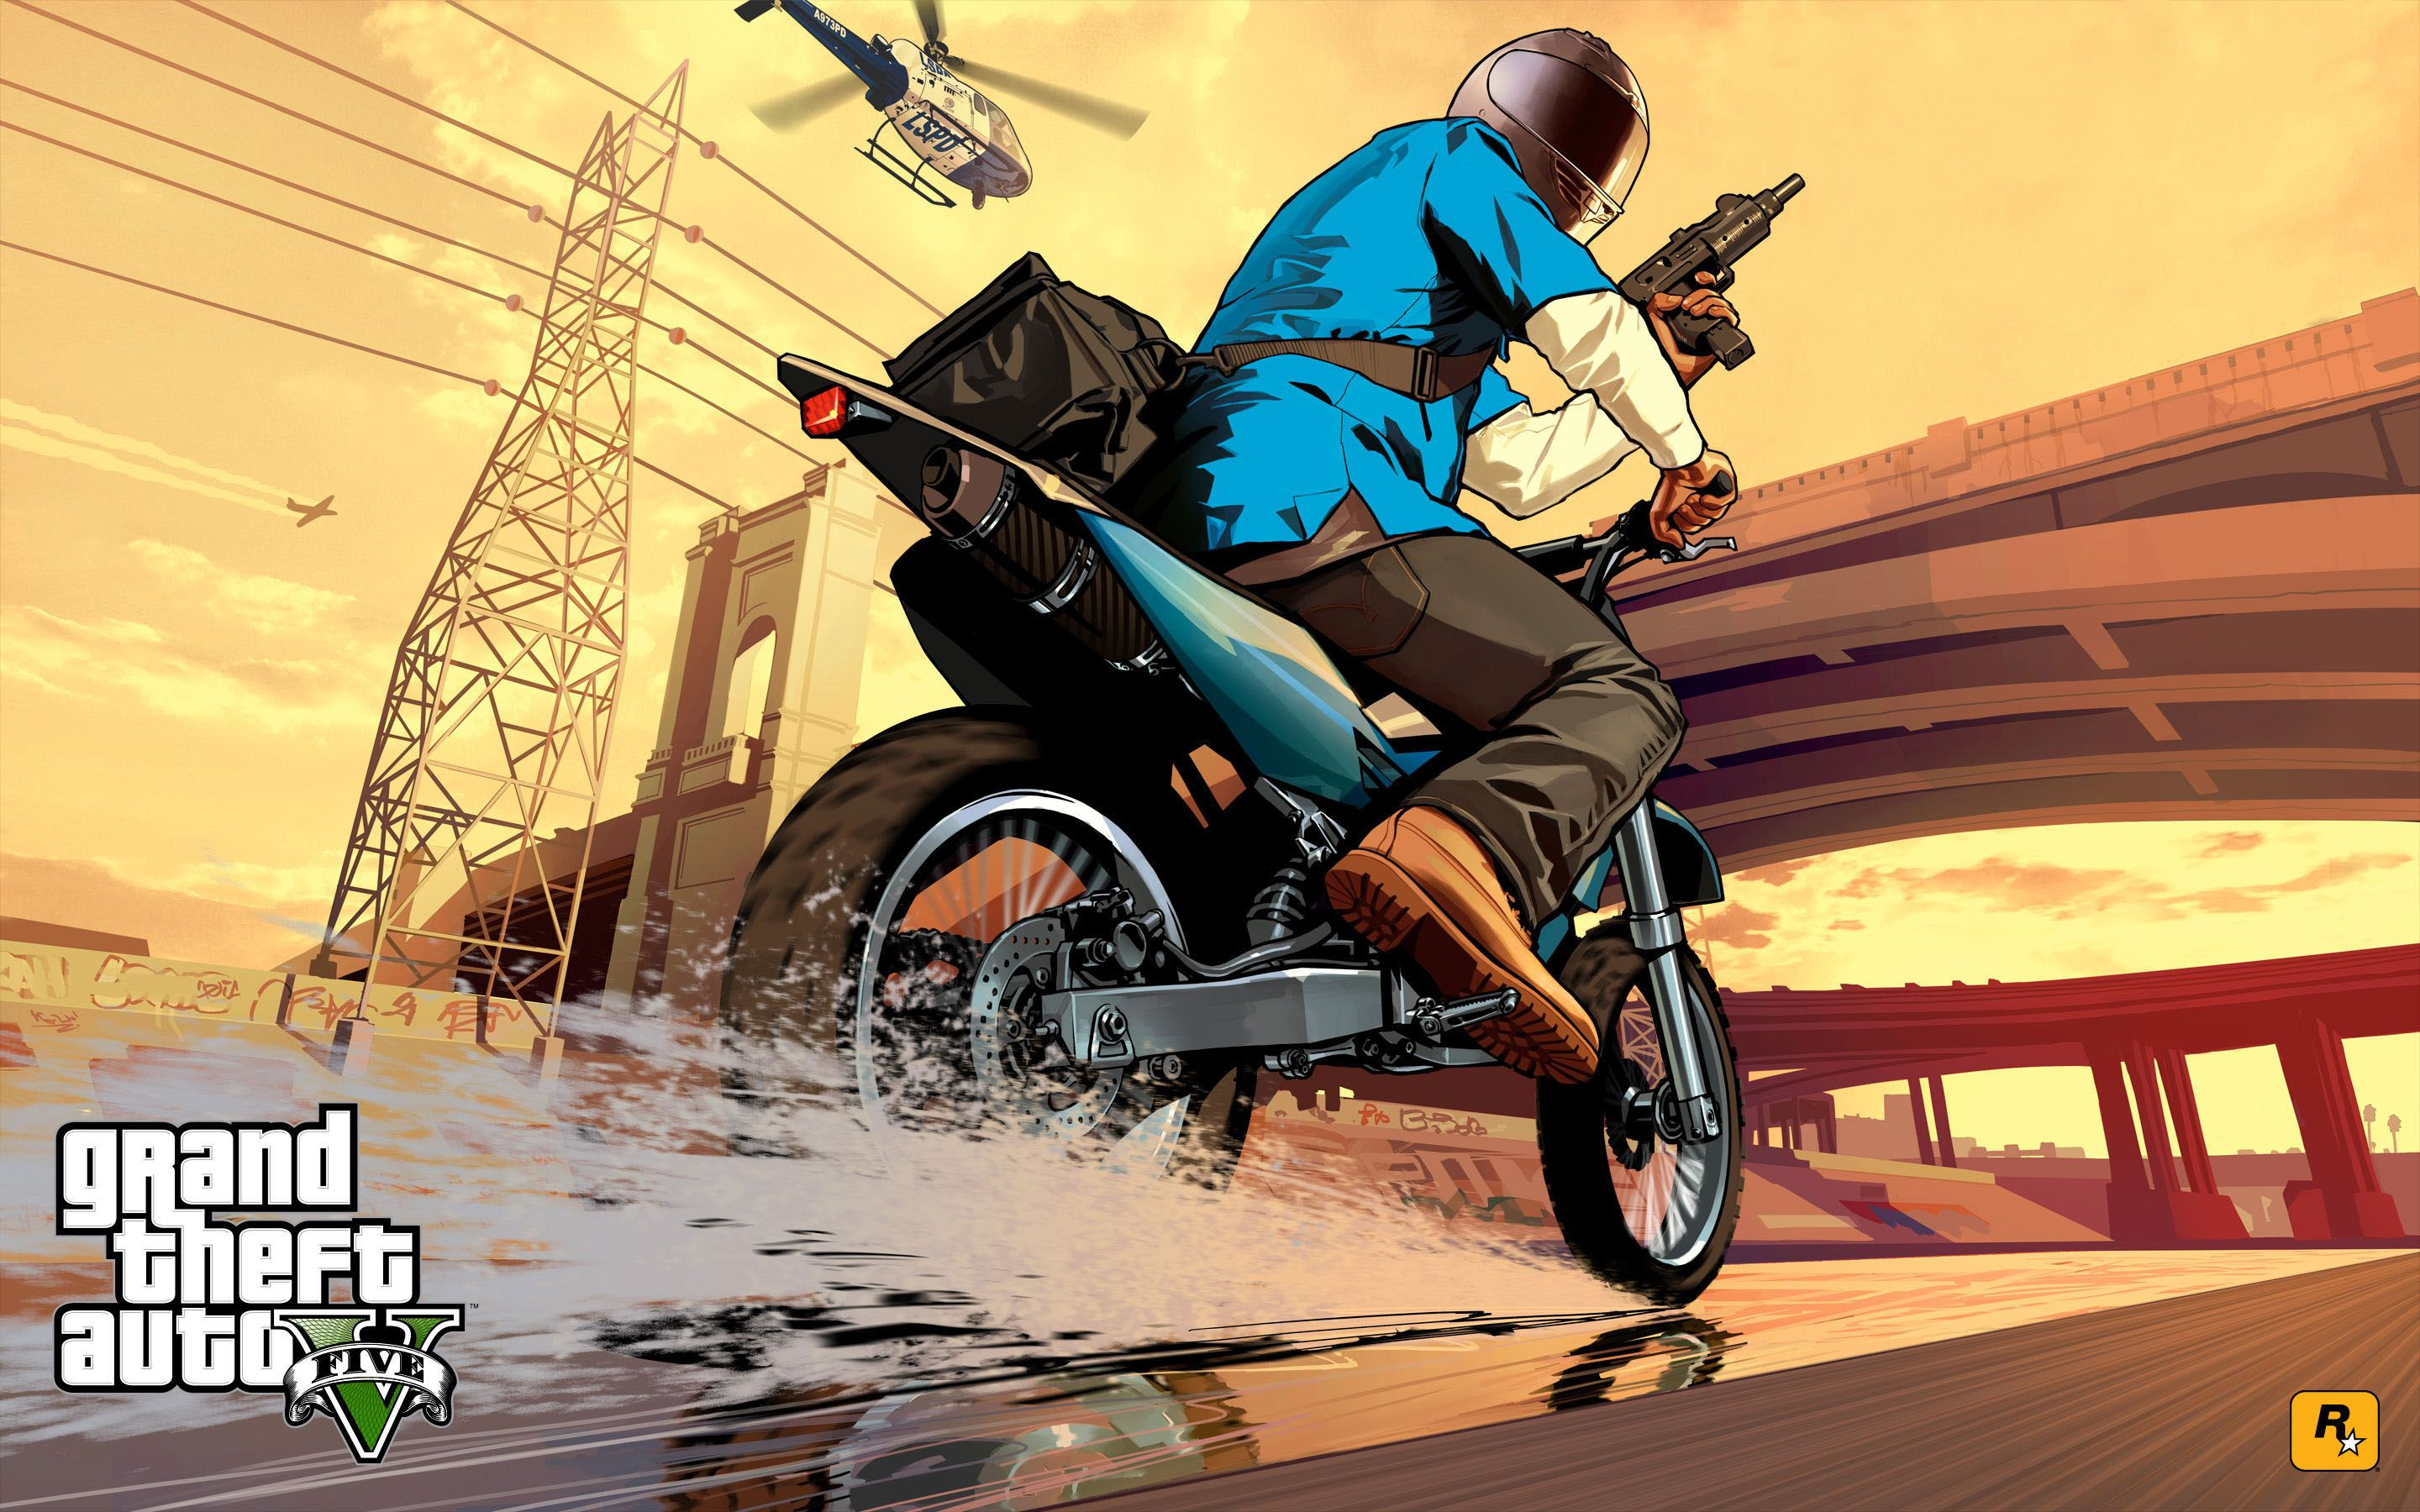 gta 5 - franklin bike chase 2880x1800 wallpaper | Другое